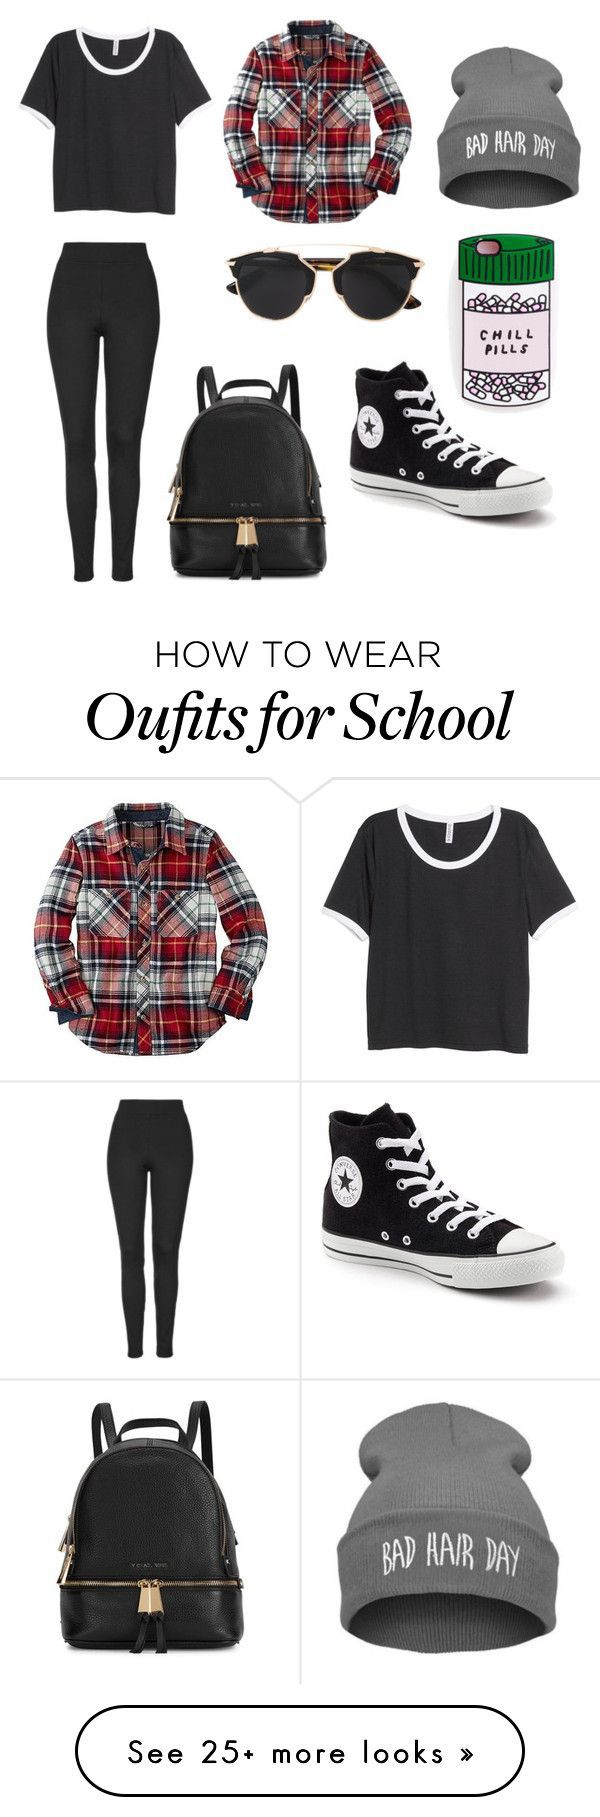 """School dayz"" by be-differient on Polyvore featuring H&M, Converse, Christian Dior, Topshop and Michael Kors"